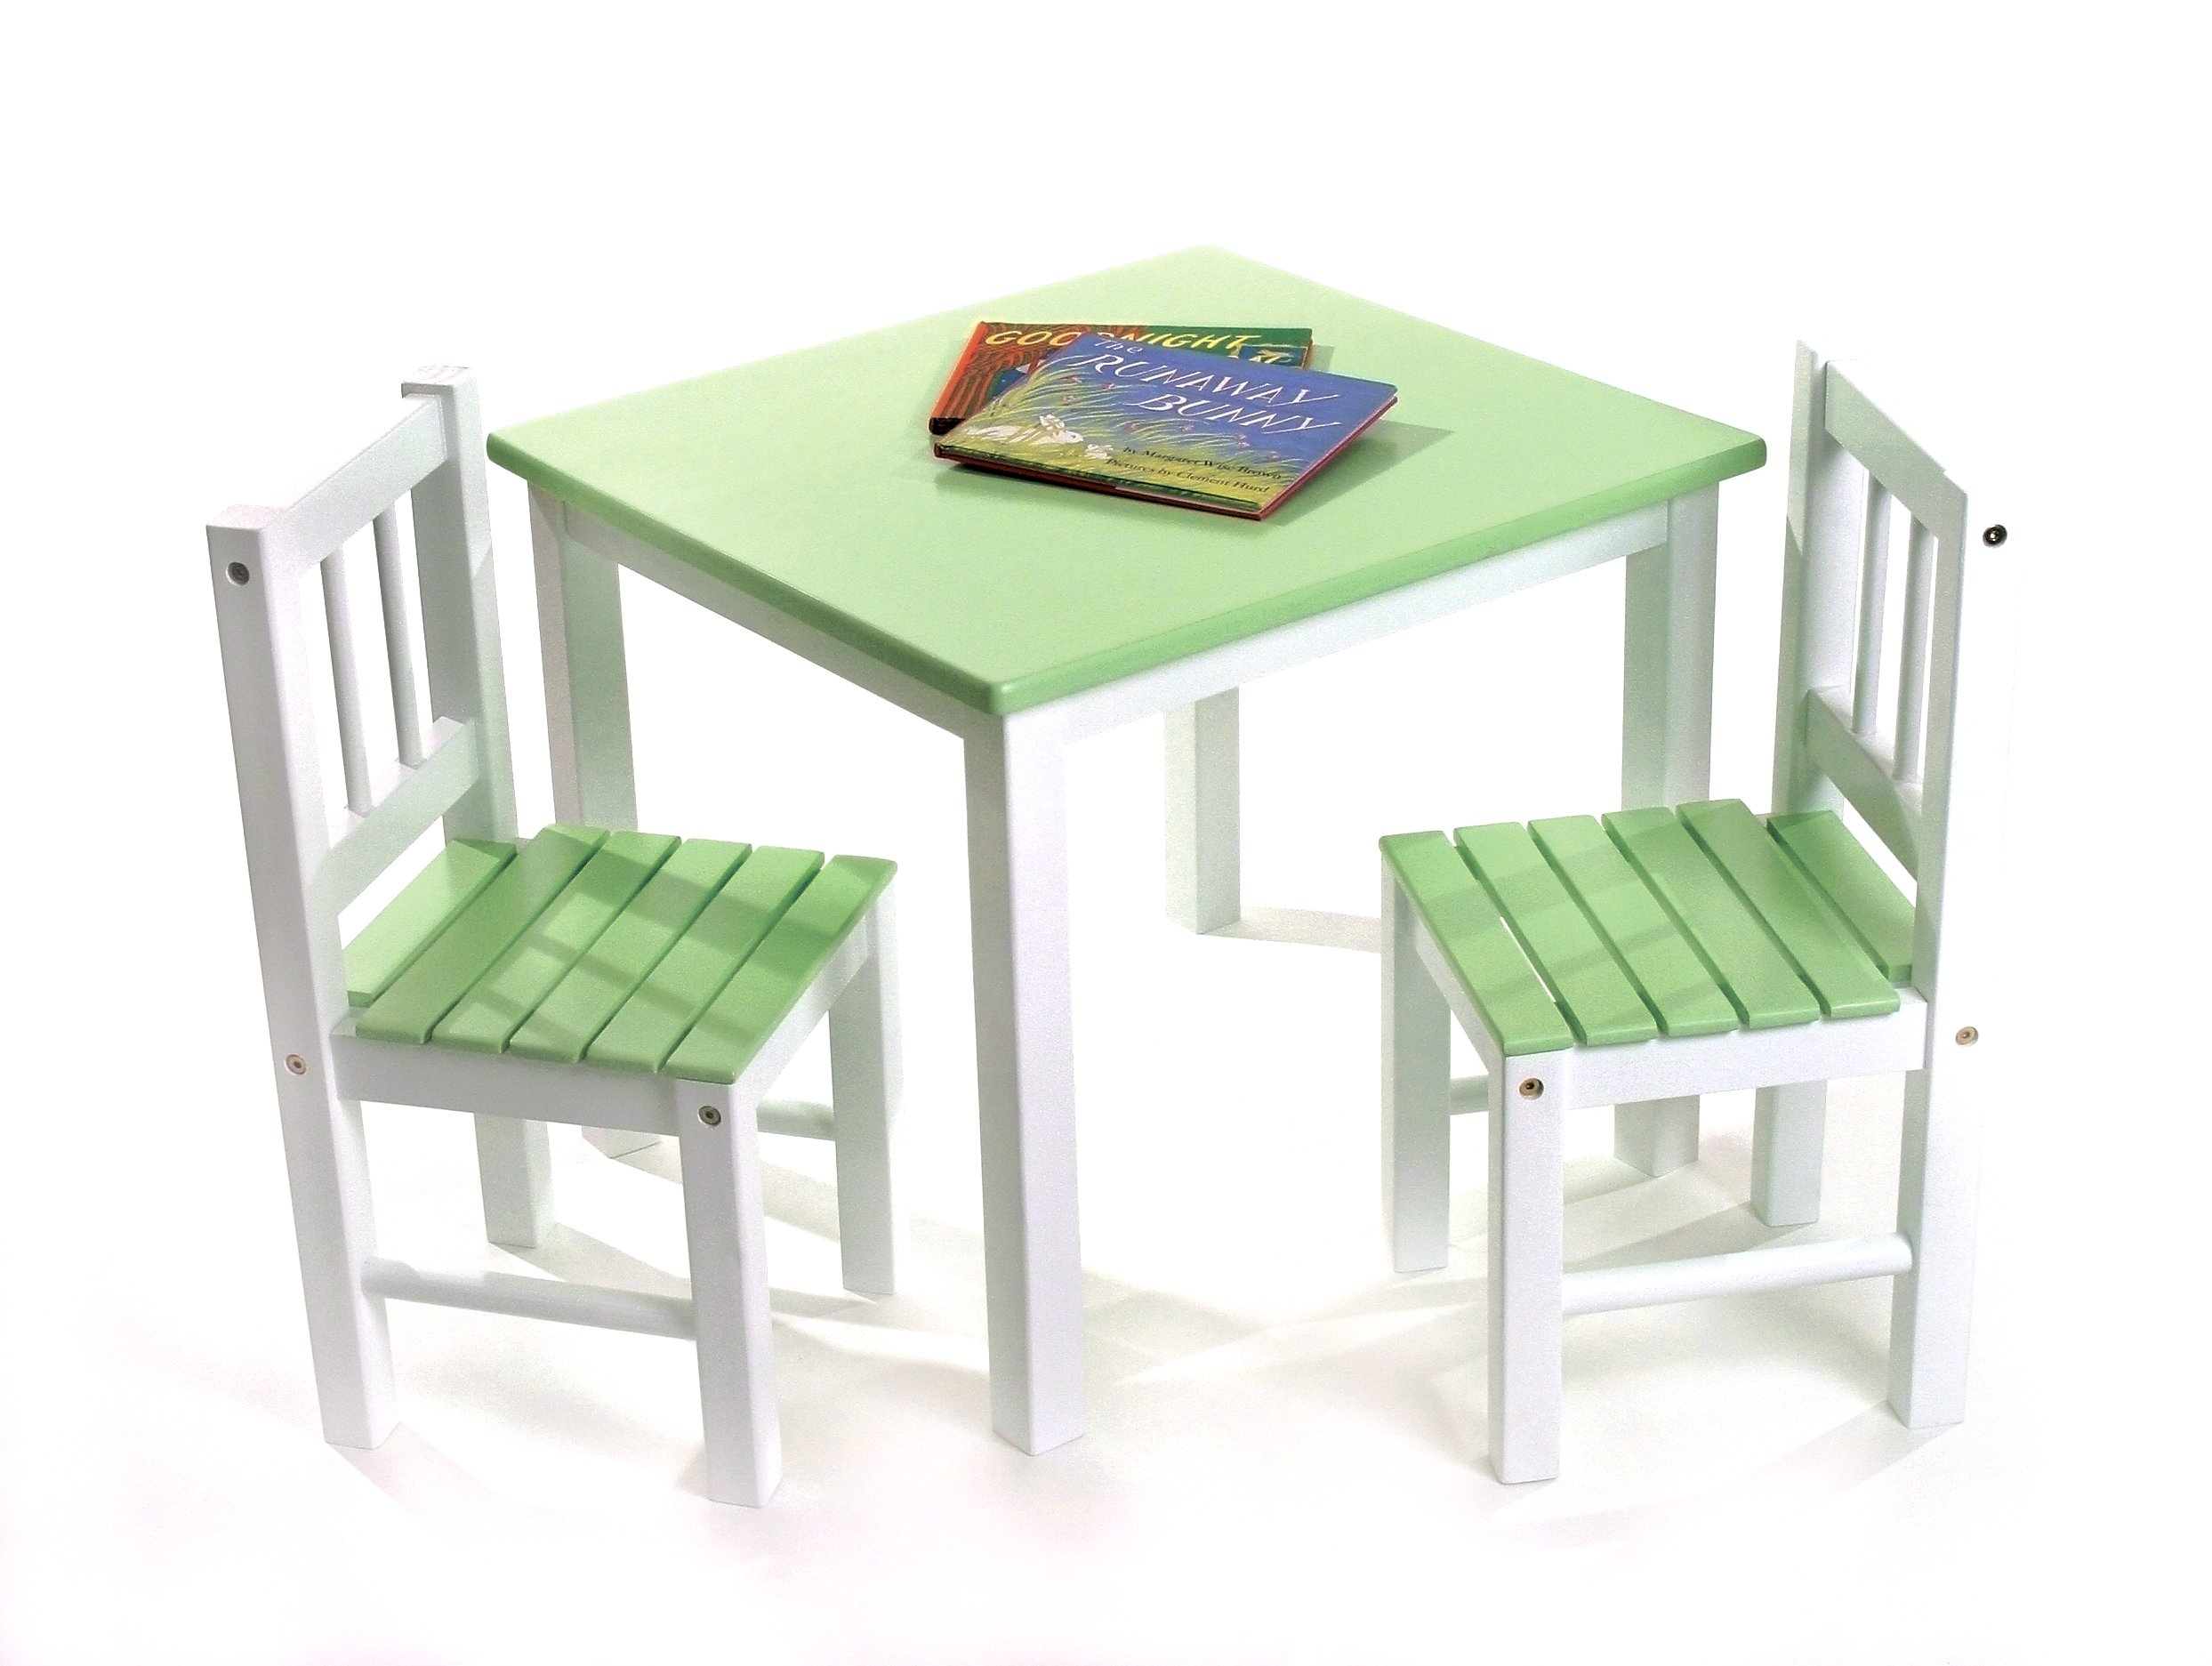 Lipper International 513GR Child's Table and 2 Chairs, Green and White